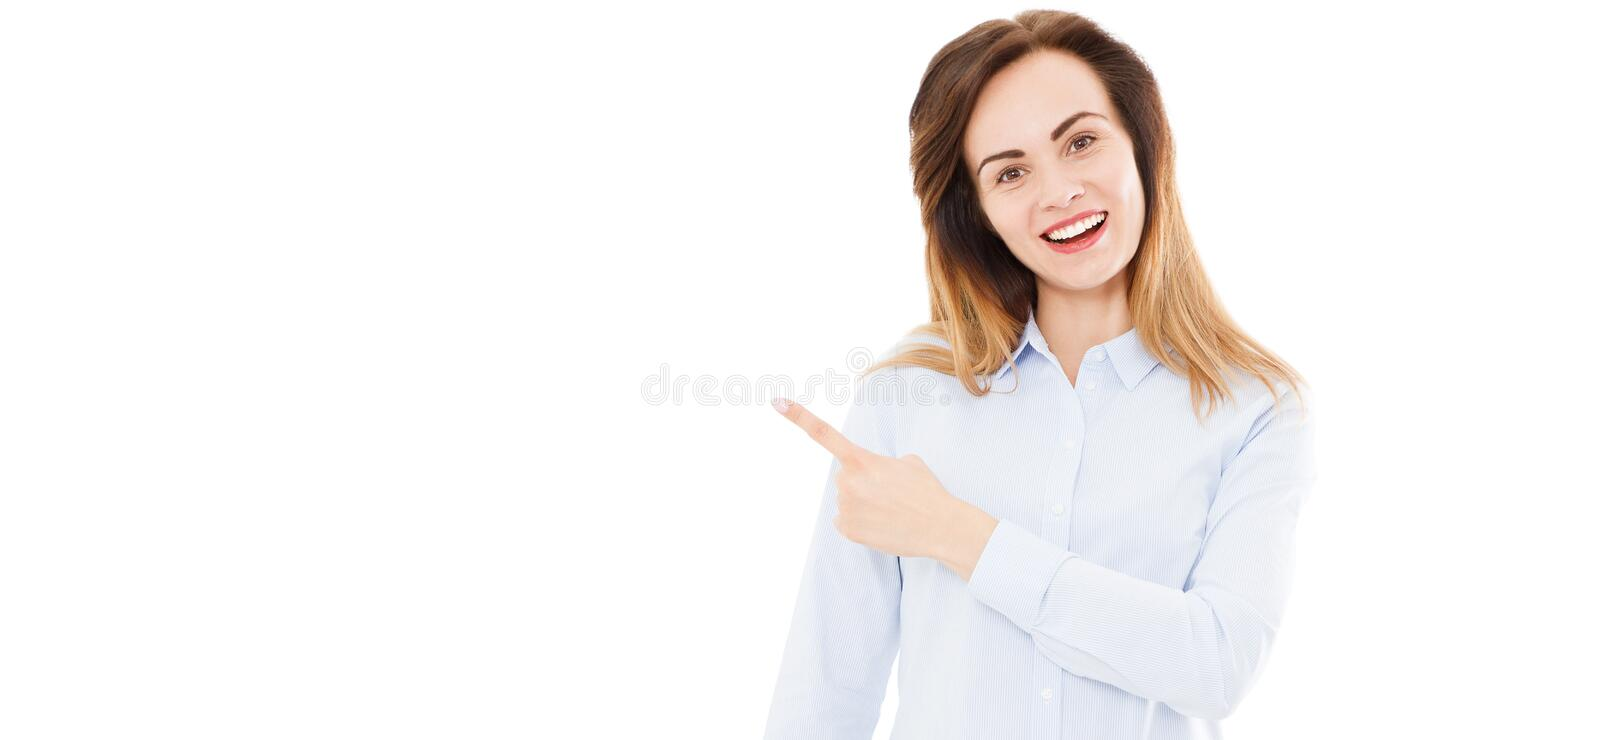 Happy young woman pointing at something on white background isolated royalty free stock image